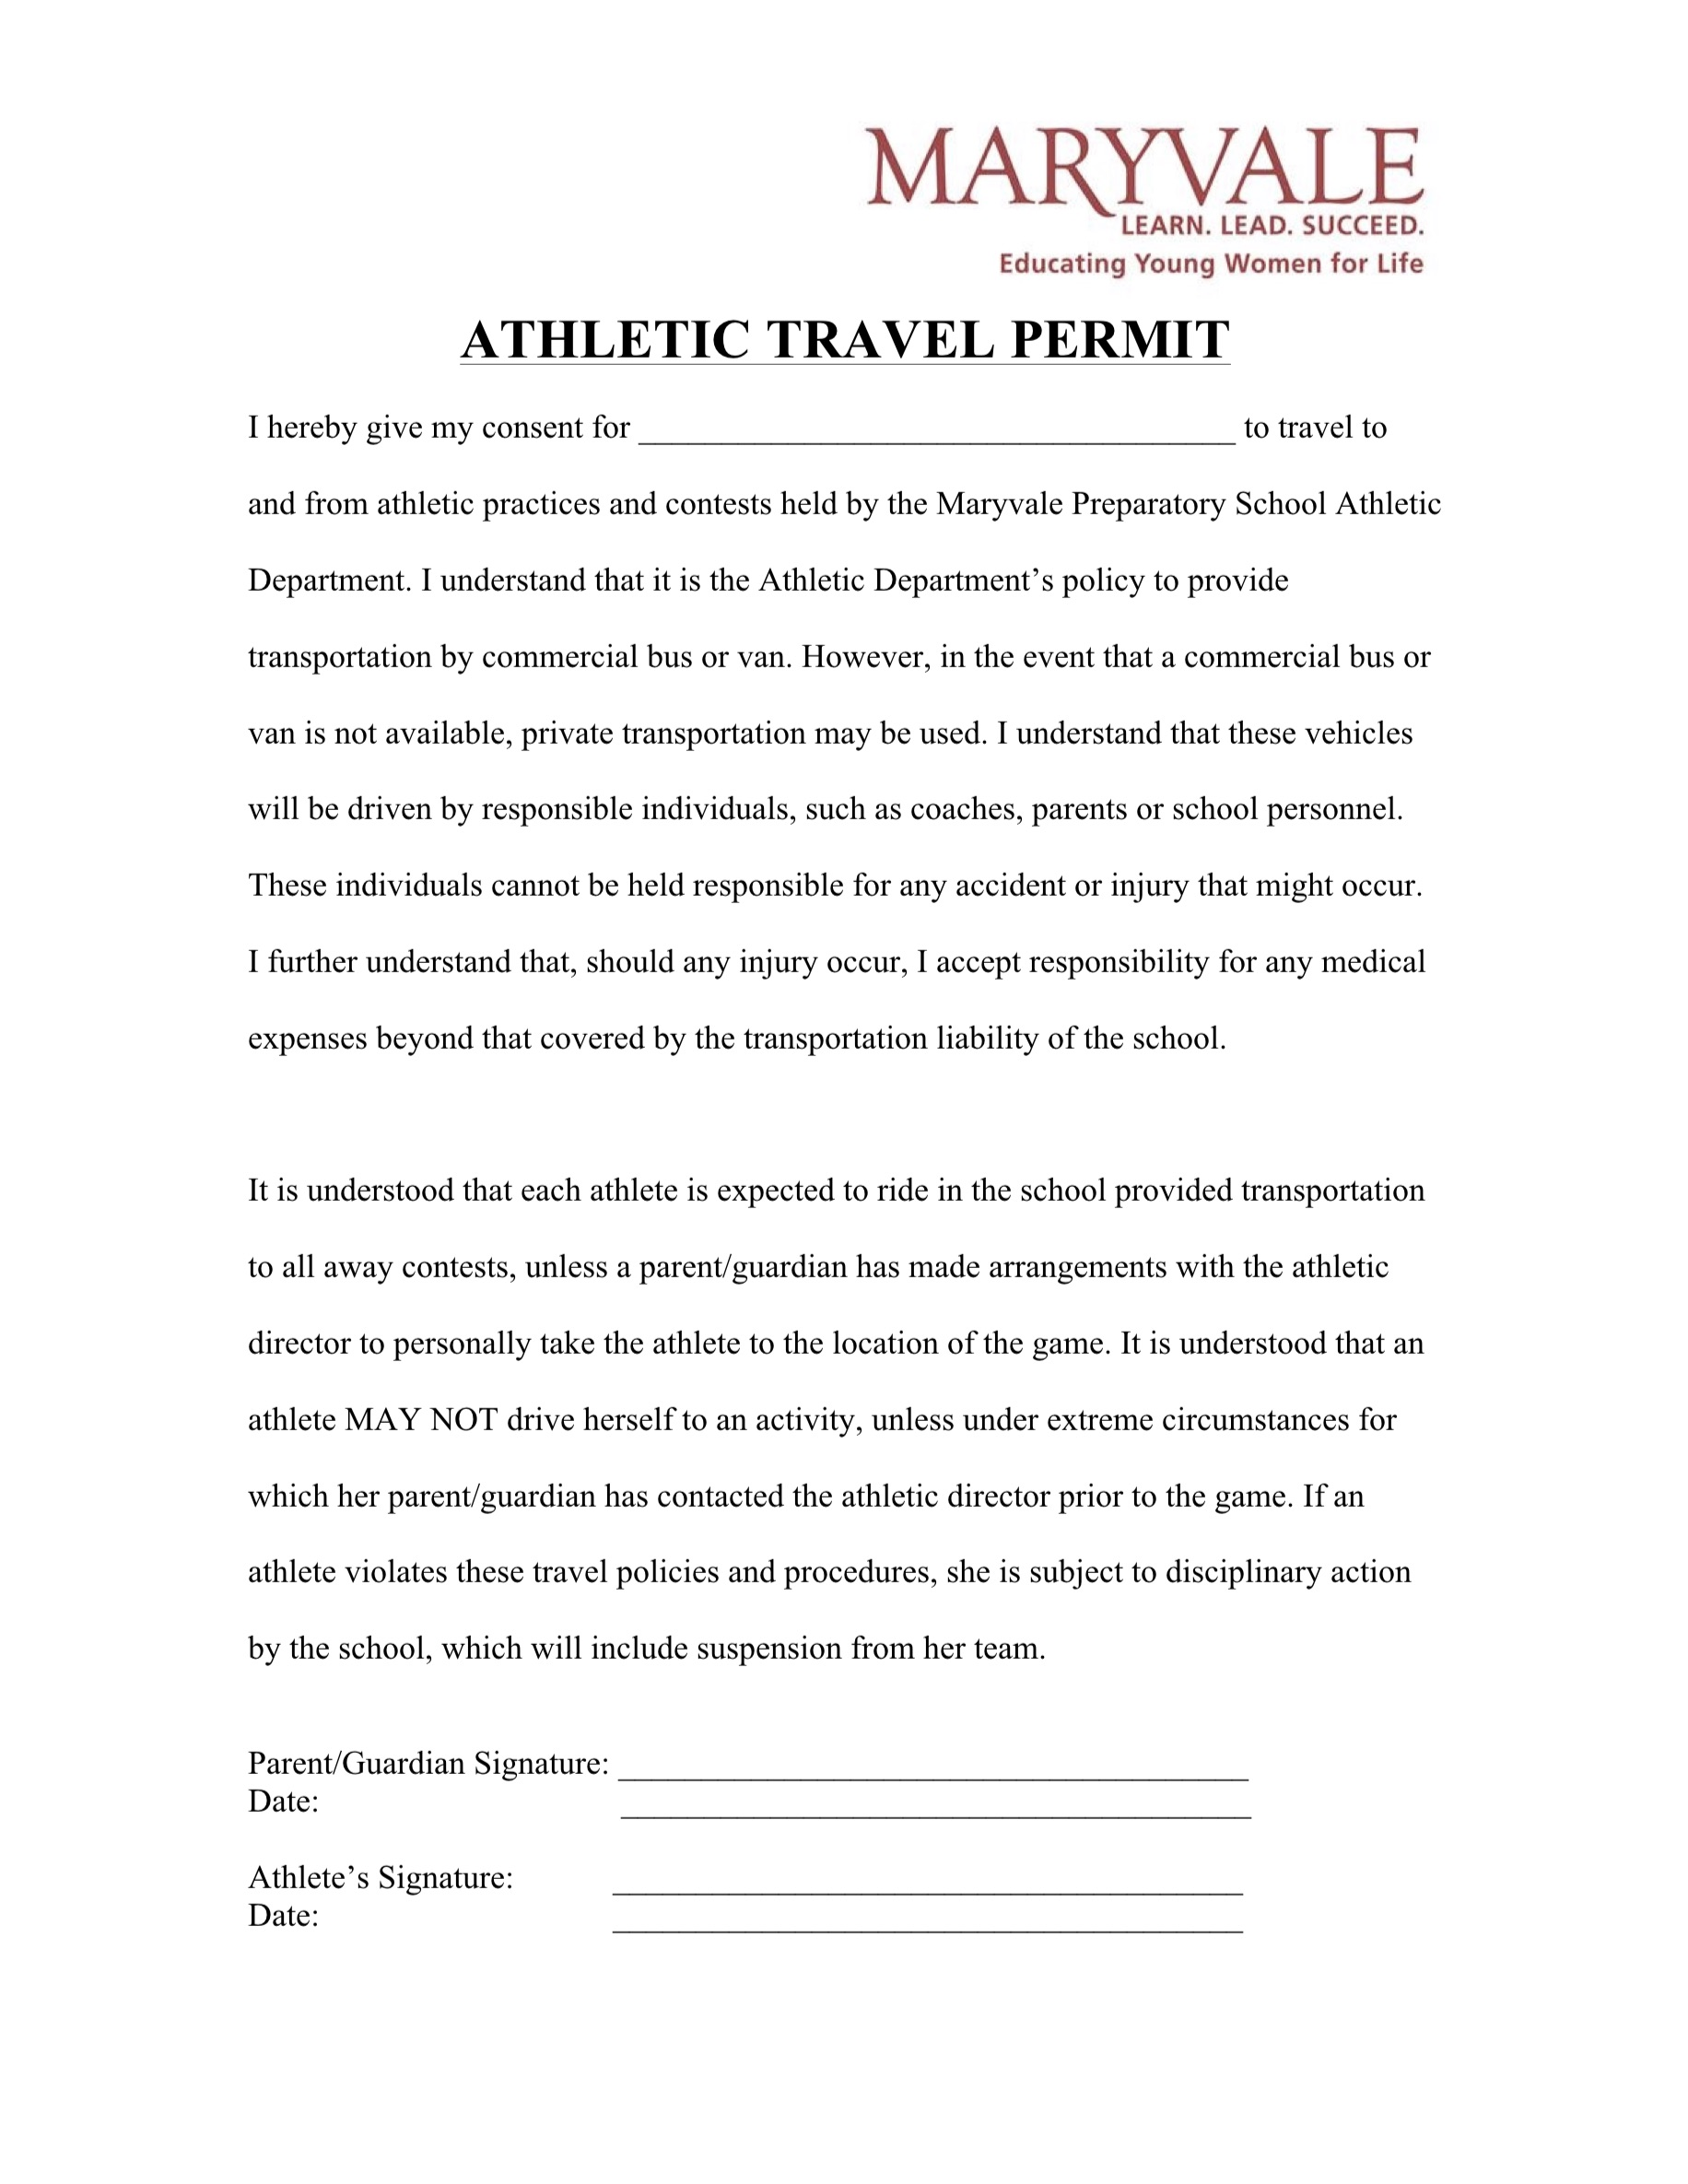 Maryvale Athletic Travel Permission Form